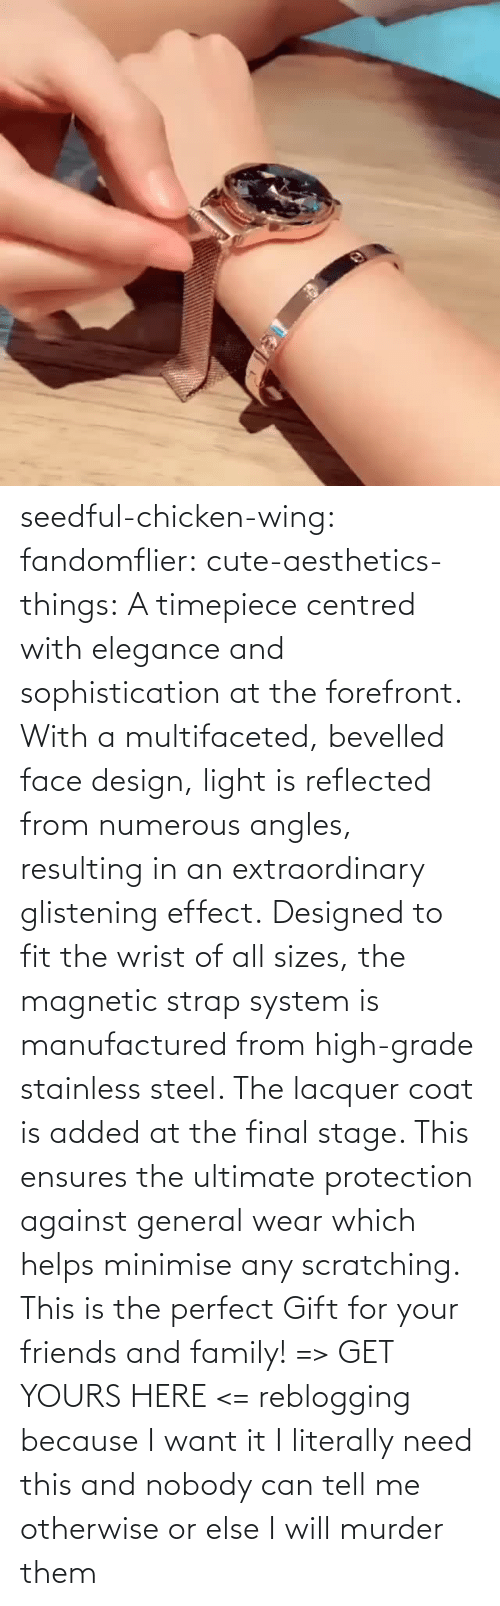 The Perfect: seedful-chicken-wing: fandomflier:  cute-aesthetics-things:   A timepiece centred with elegance and sophistication at the forefront. With a multifaceted, bevelled face design, light is reflected from numerous angles, resulting in an extraordinary glistening effect. Designed to fit the wrist of all sizes, the magnetic strap system is manufactured from high-grade stainless steel. The lacquer coat is added at the final stage. This ensures the ultimate protection against general wear which helps minimise any scratching. This is the perfect Gift for your friends and family! => GET YOURS HERE <=   reblogging because I want it  I literally need this and nobody can tell me otherwise or else I will murder them